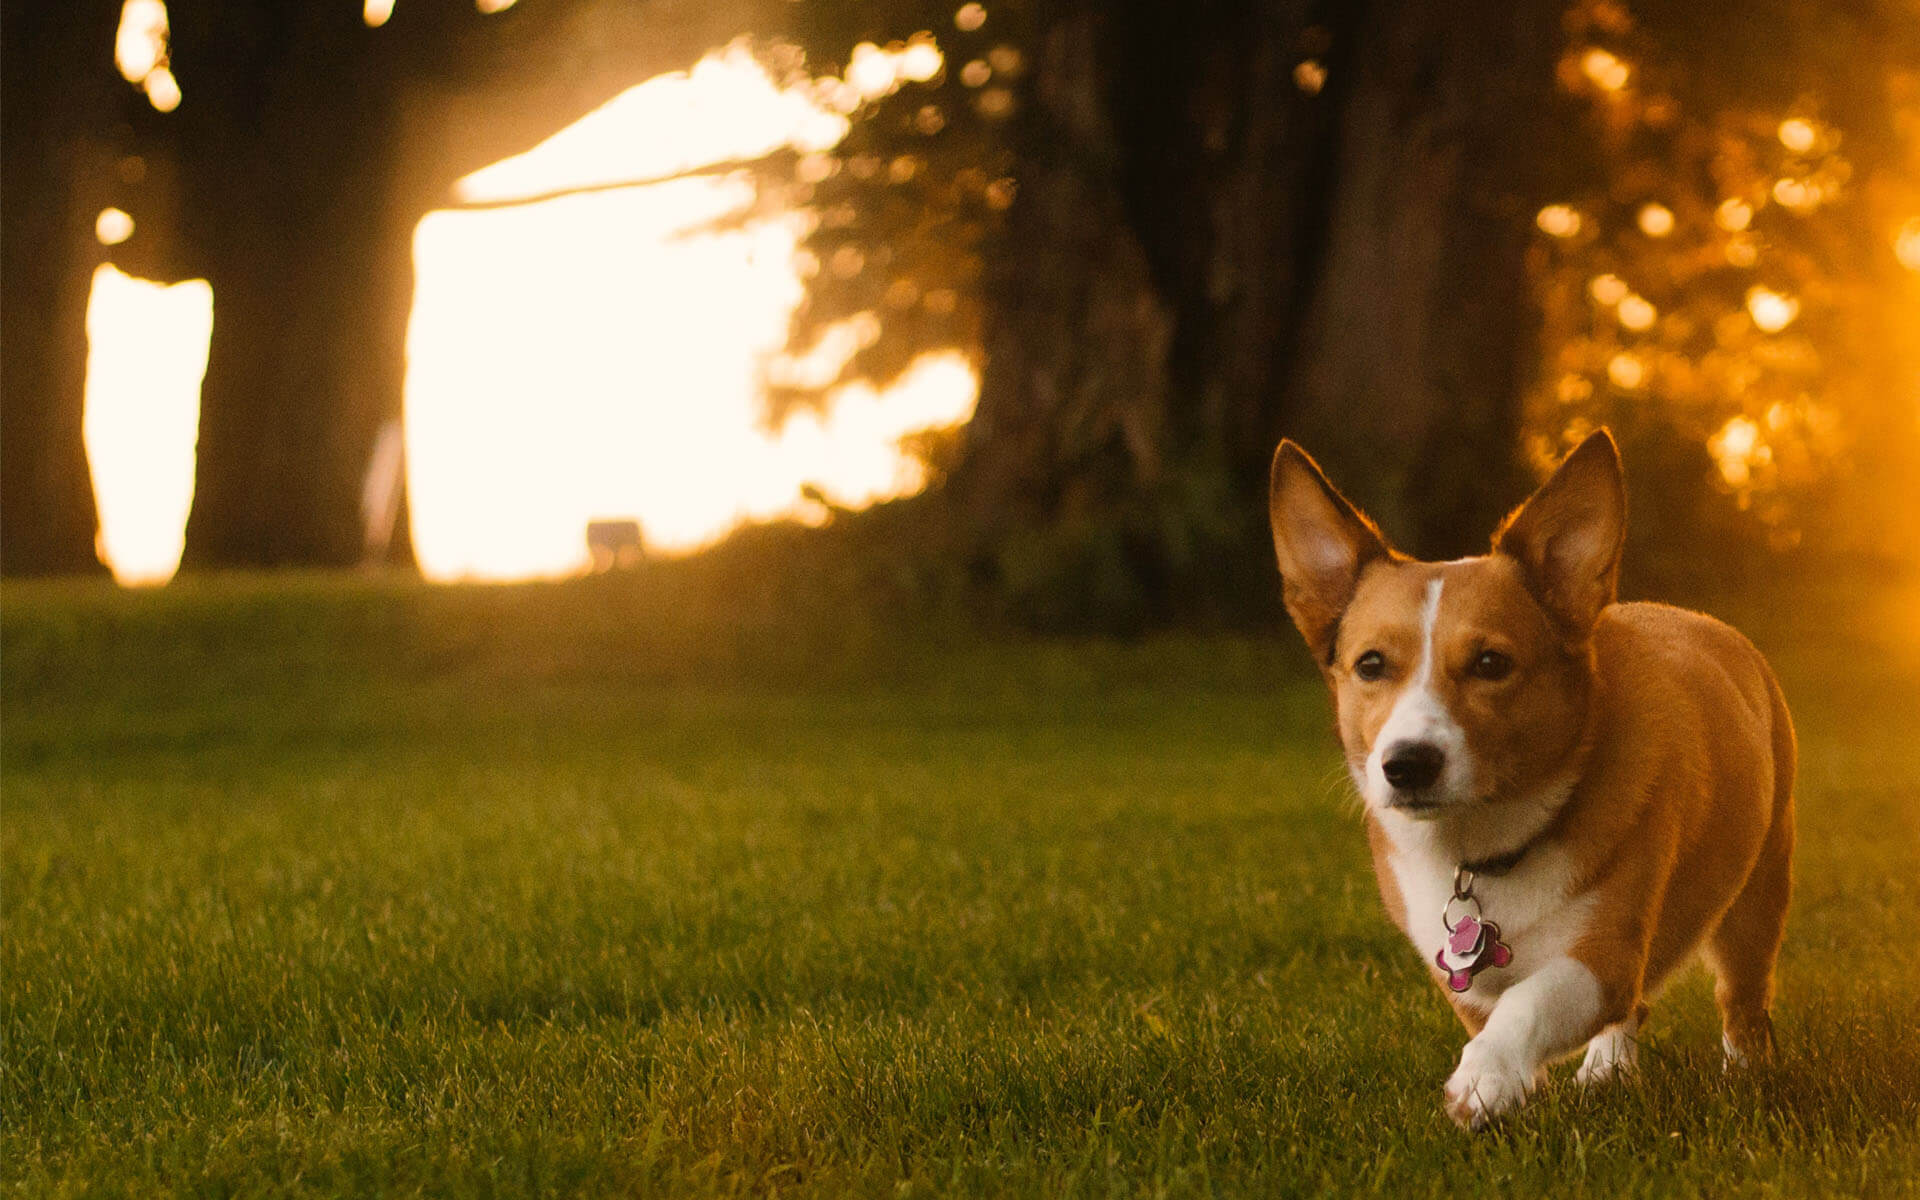 Corgi running in sunset